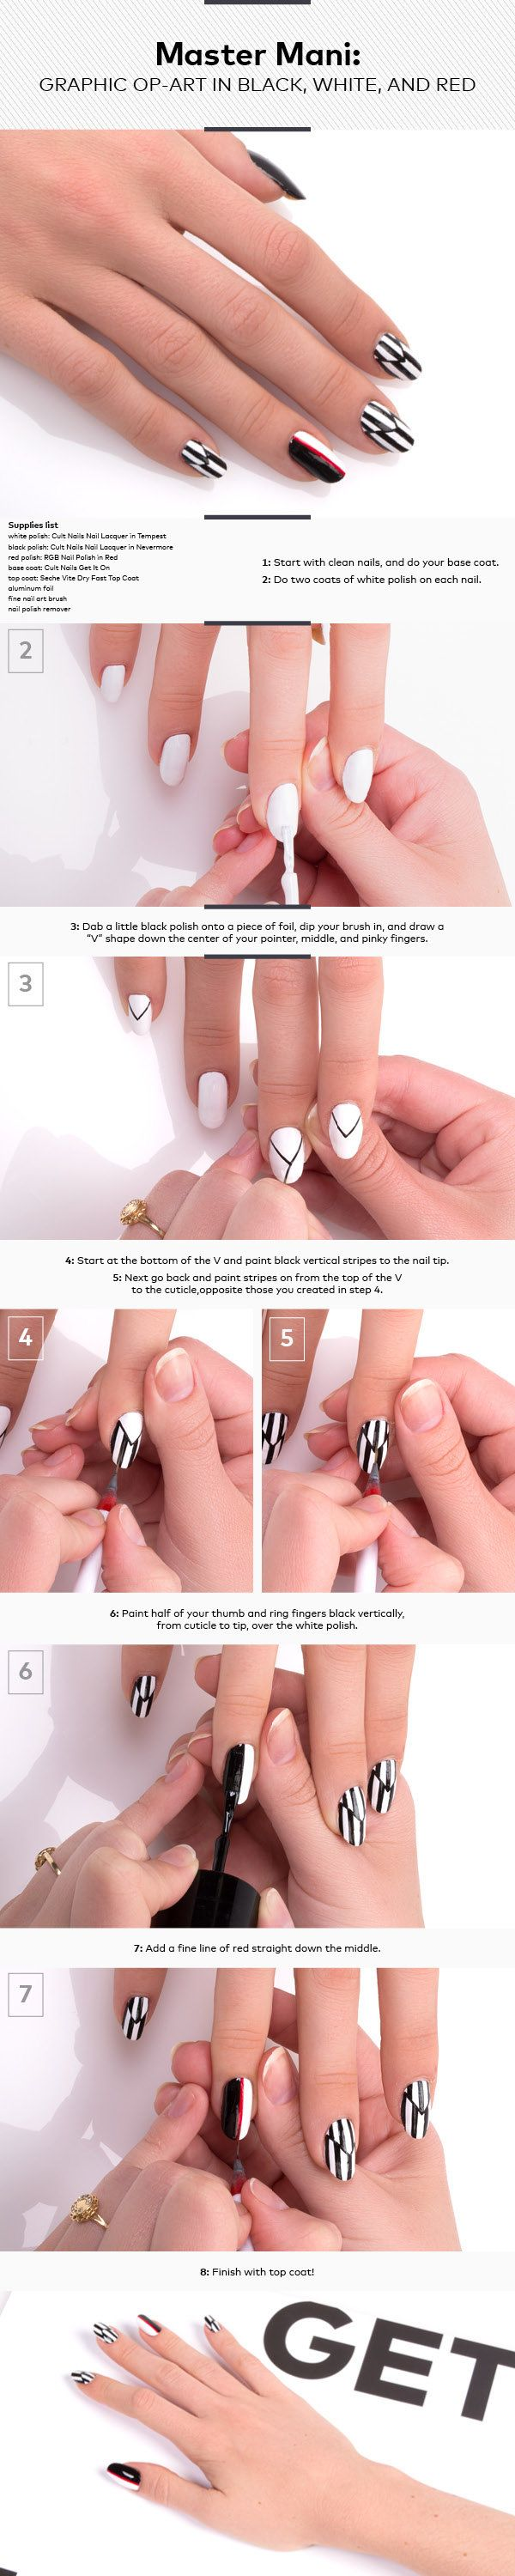 Master Mani: Graphic Op-Art in Black, White, and Red